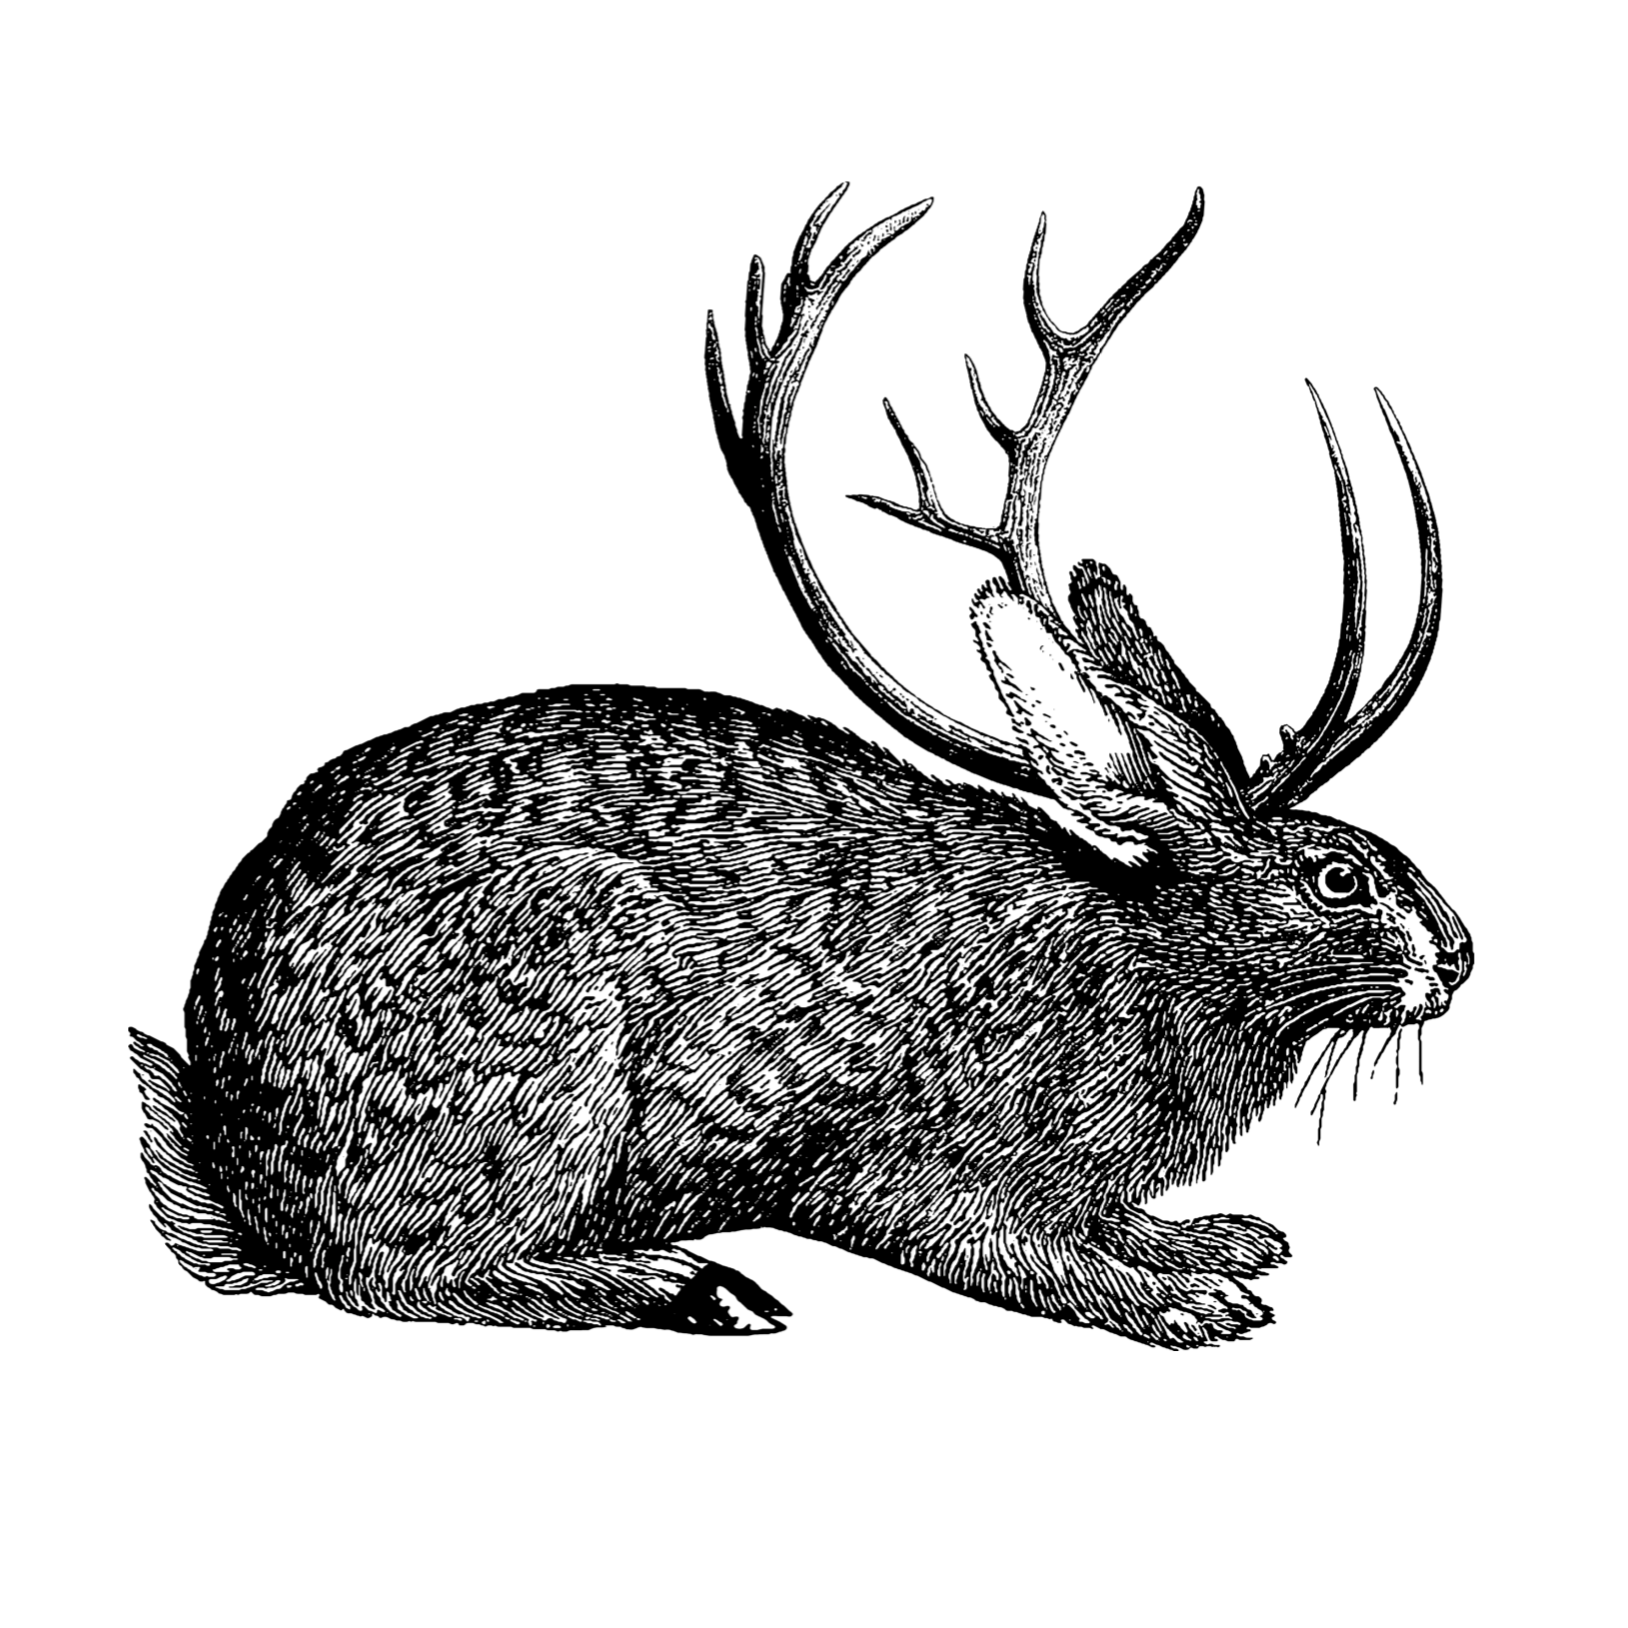 The mythical Jackalope